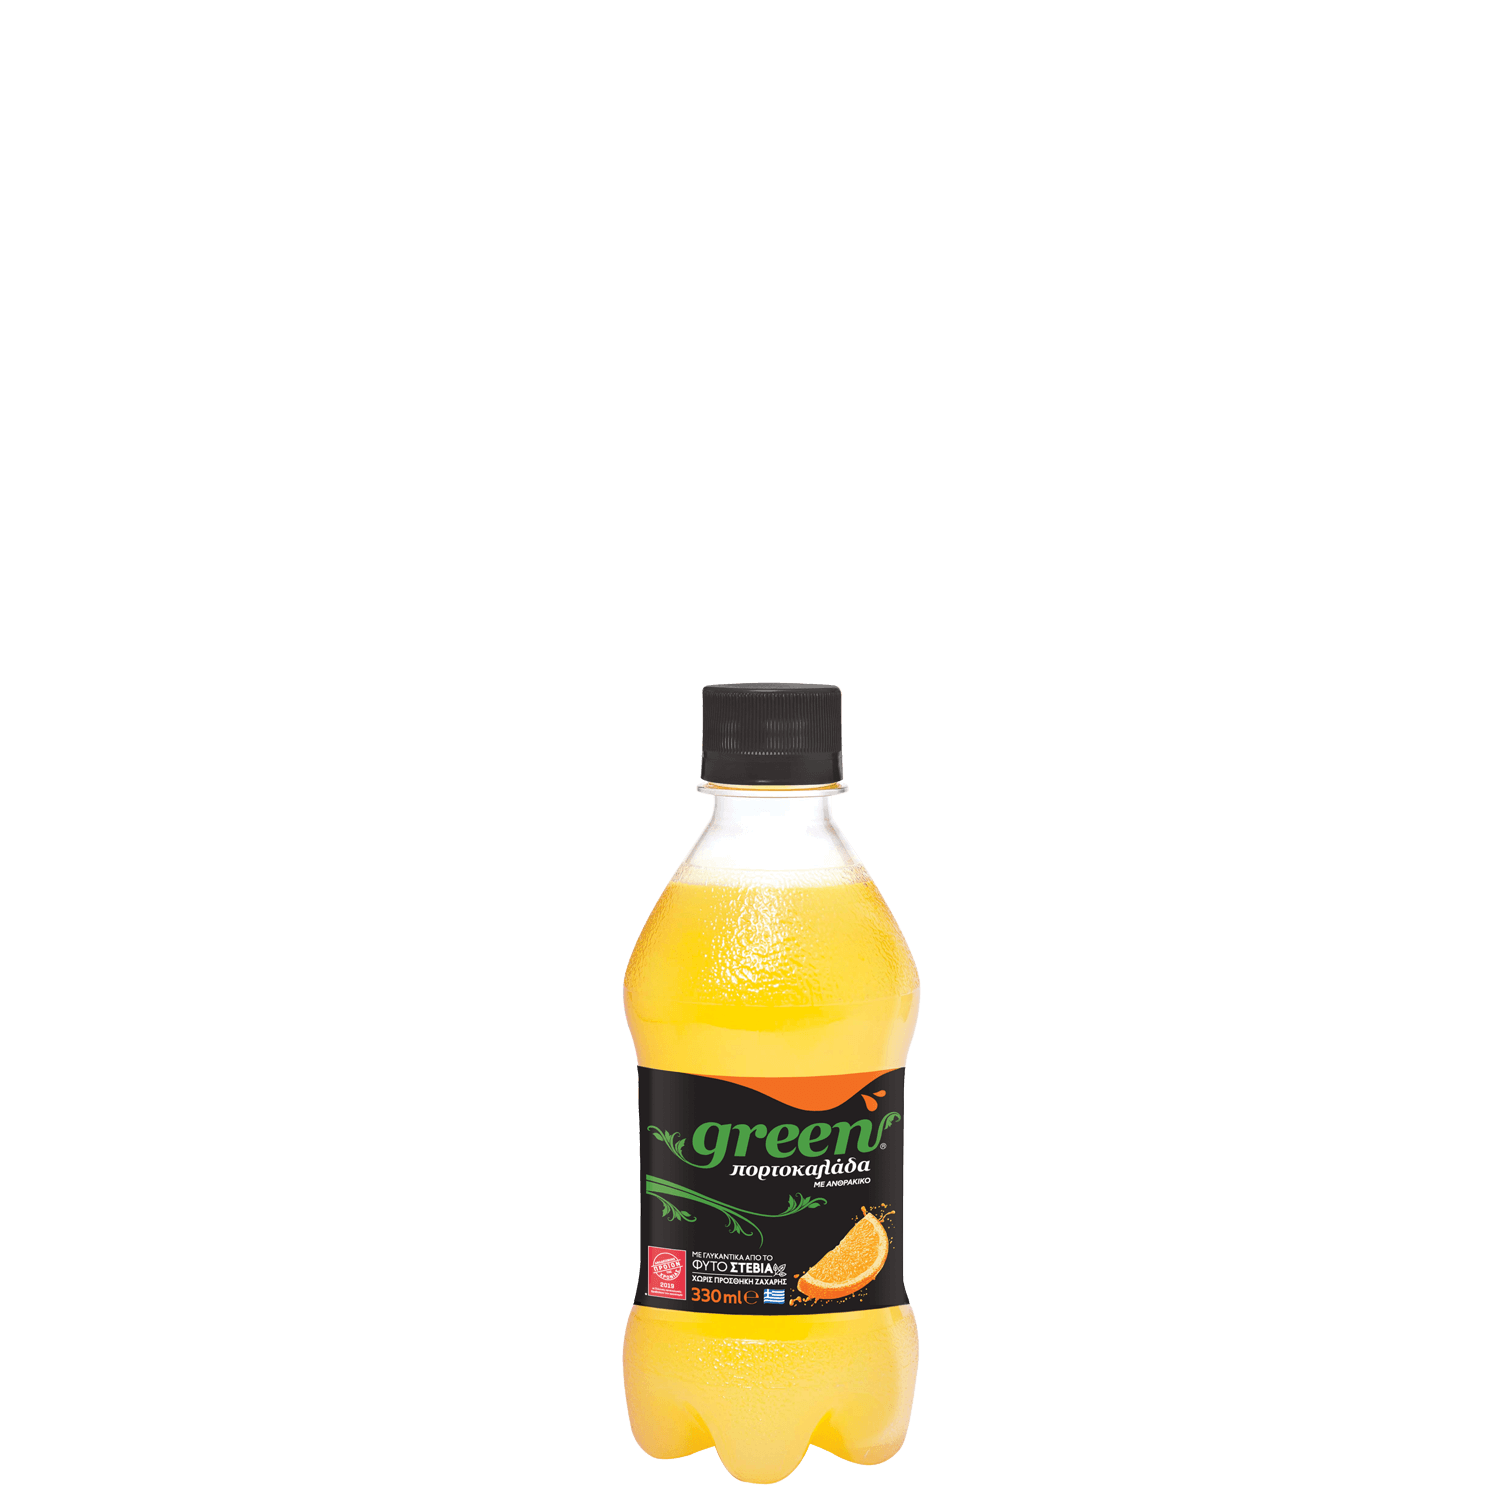 Green Orange - PET - 330ml Bottle  Copy